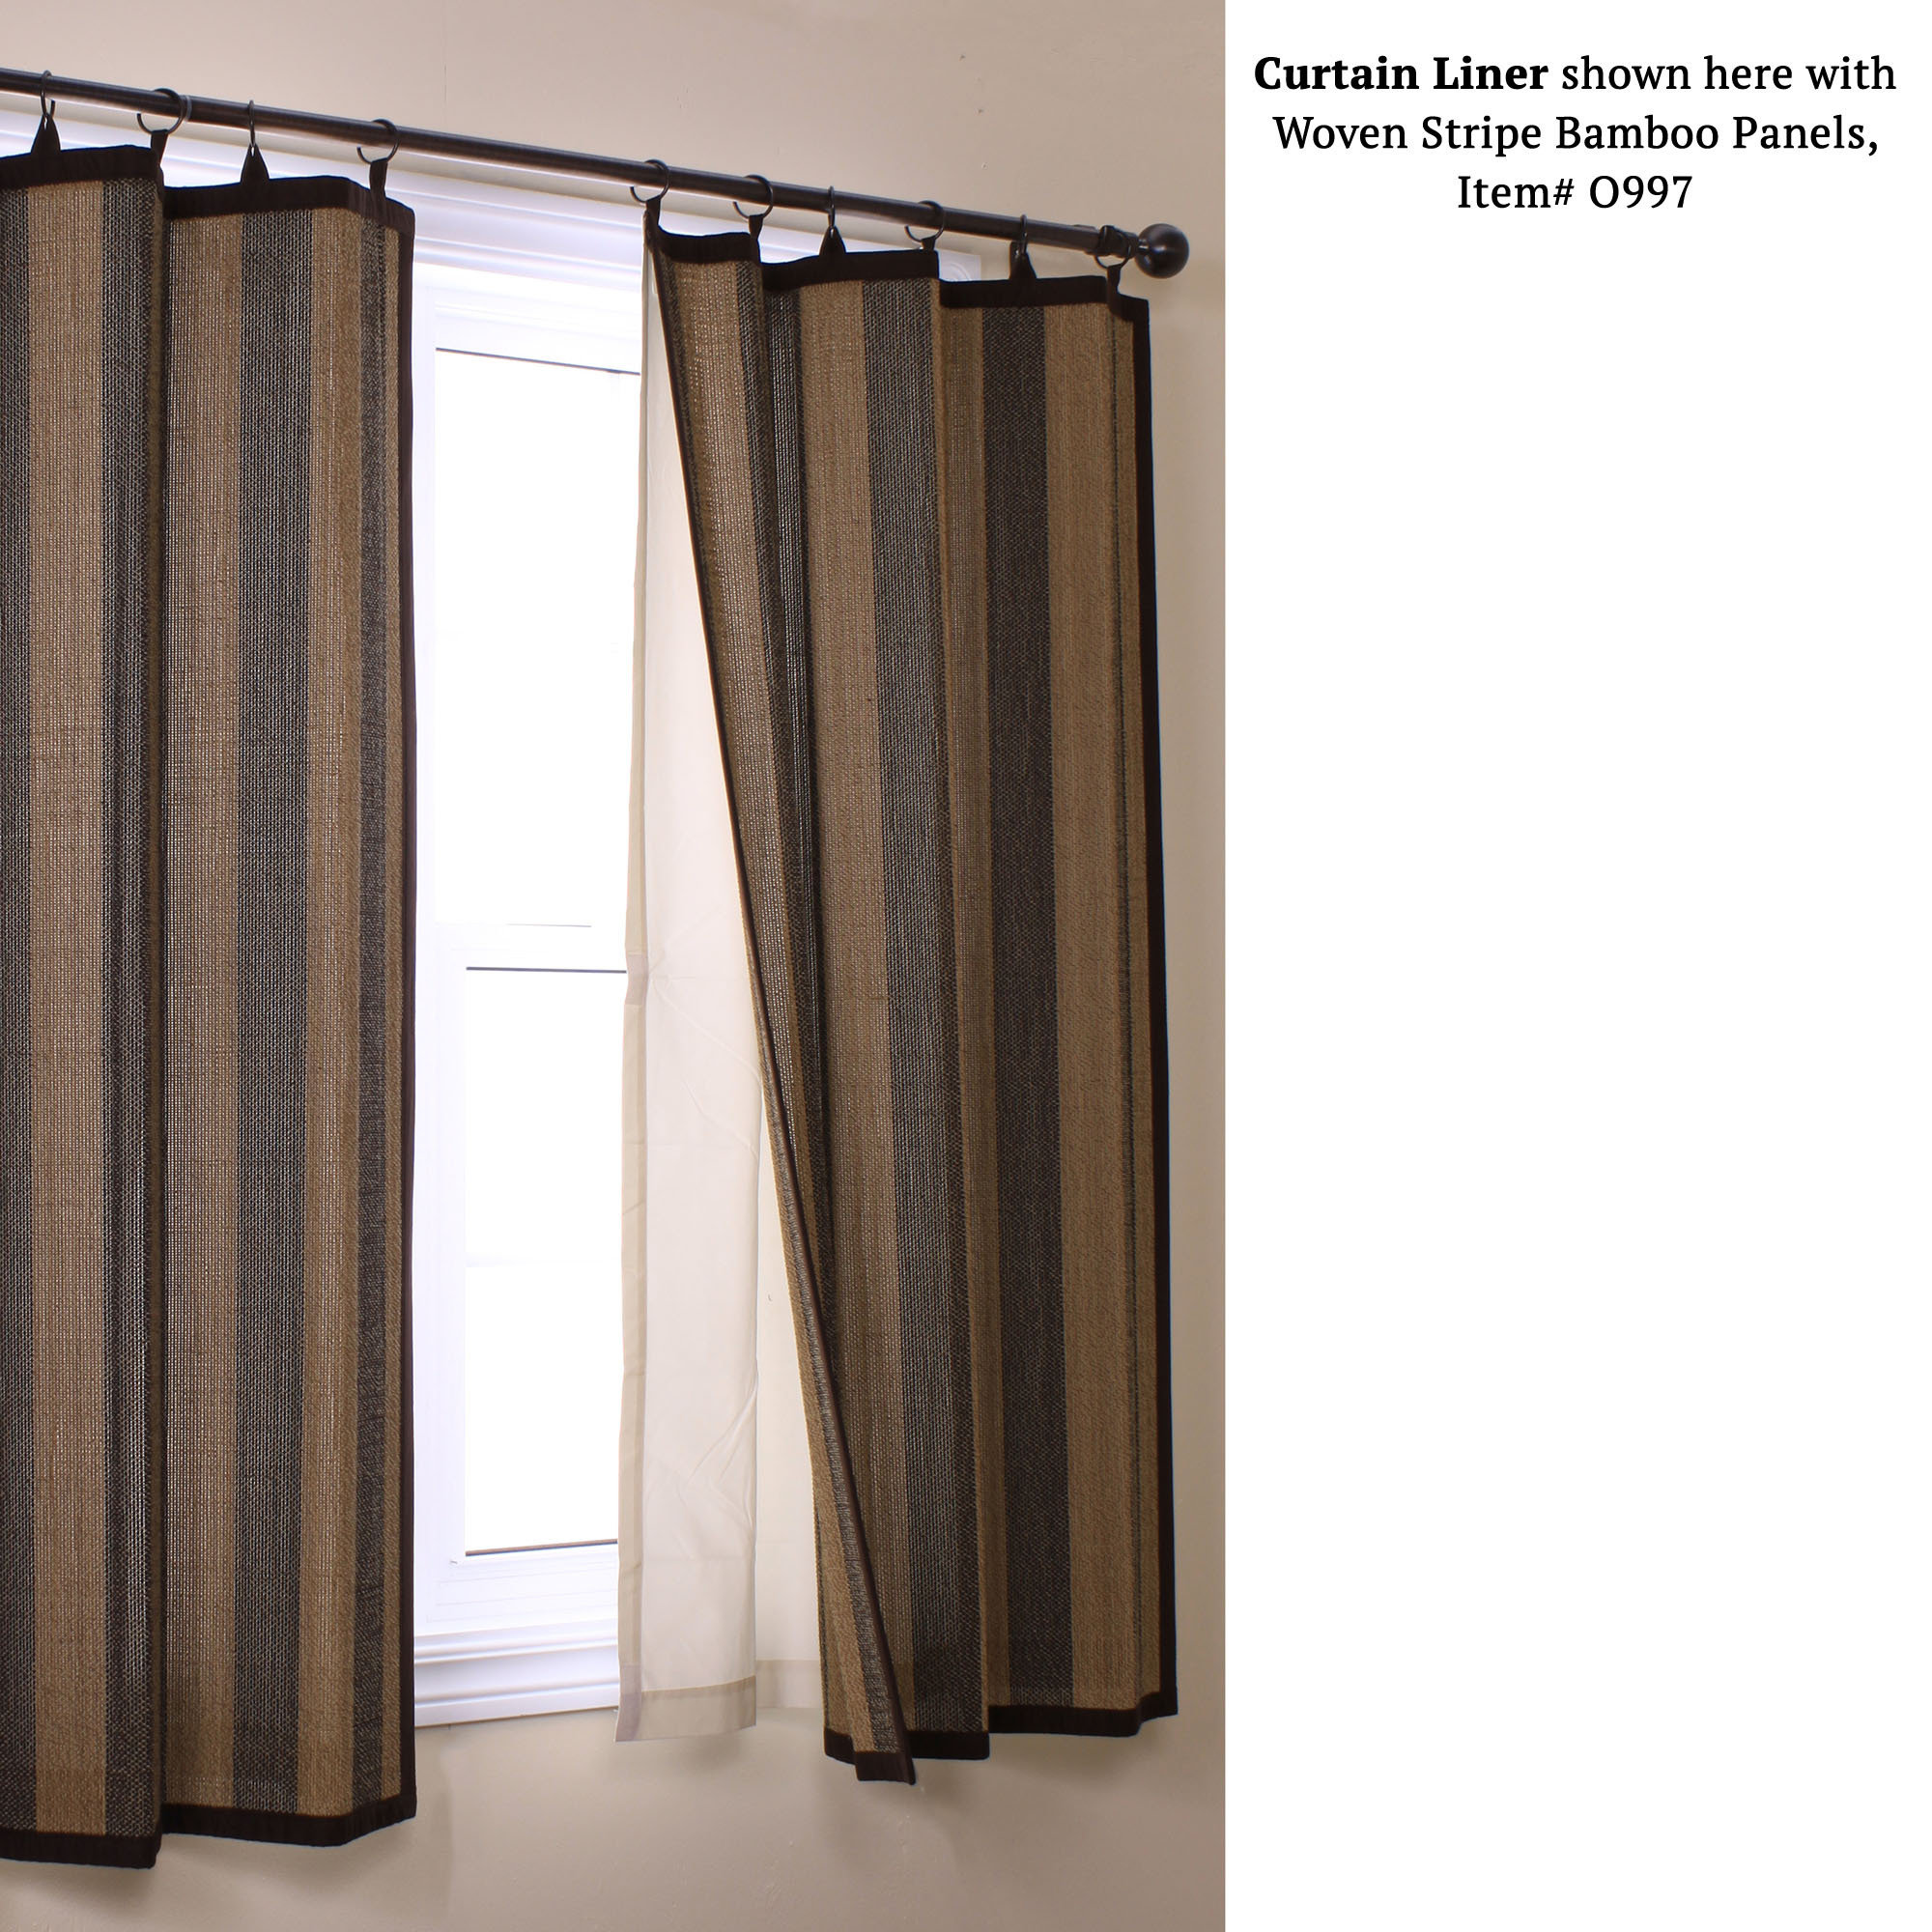 Blackout Drapes | Cheap Blackout Curtains | Blackout Curtins